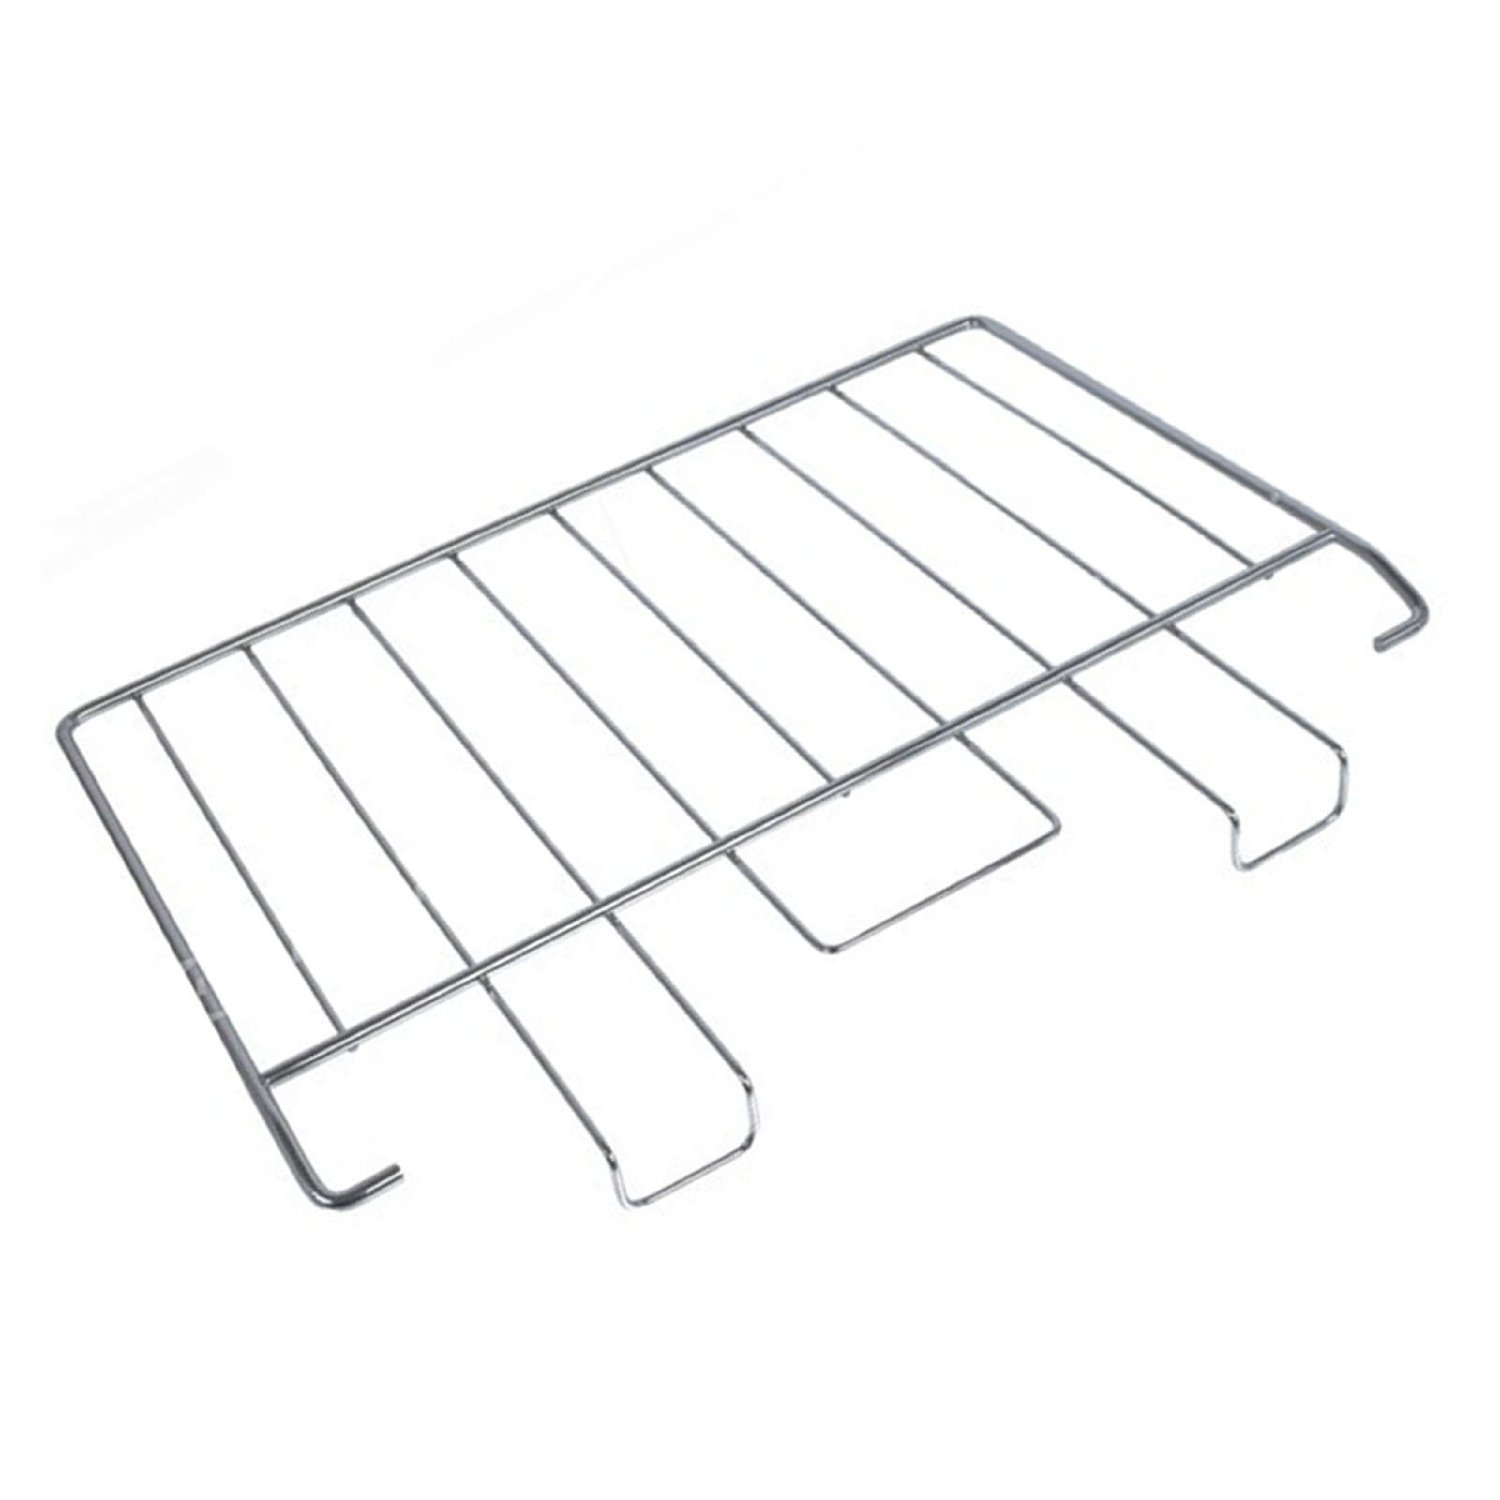 Rangemaster Leisure Oven Cooker Shelf P084112 genuine parts